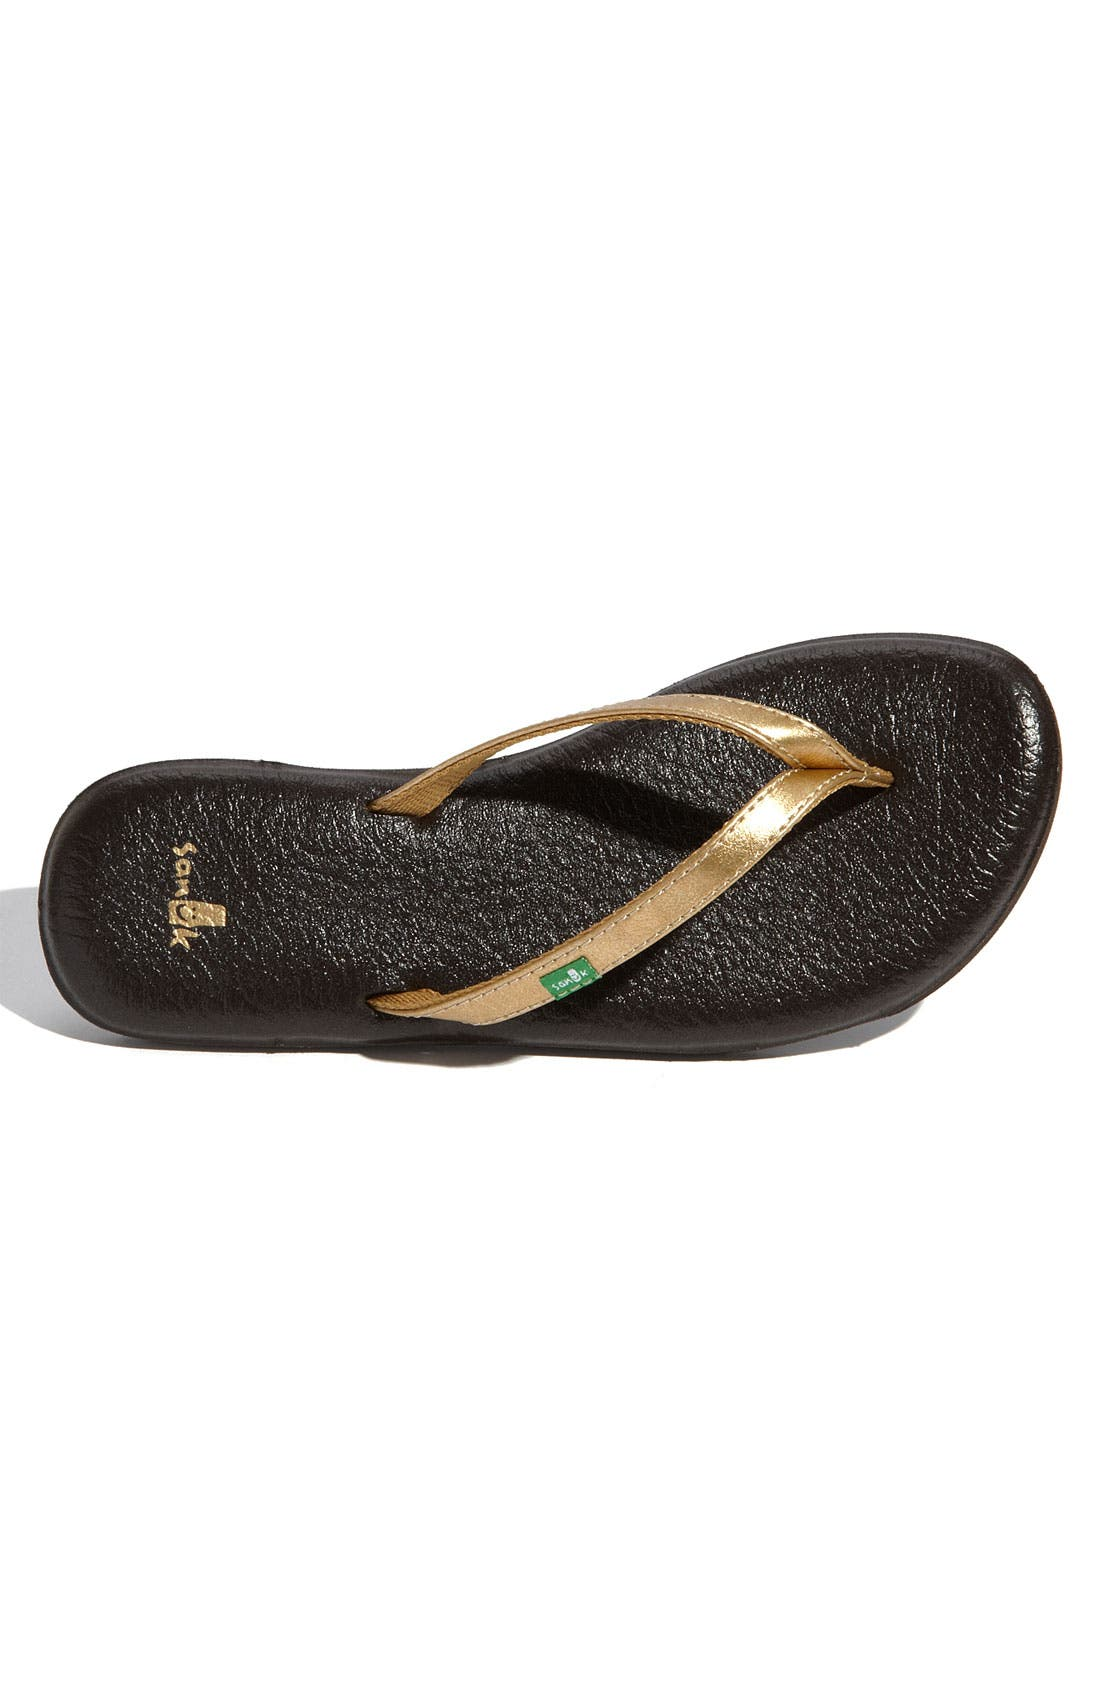 Alternate Image 3  - Sanuk 'Yoga Spree' Flip Flop (Women)